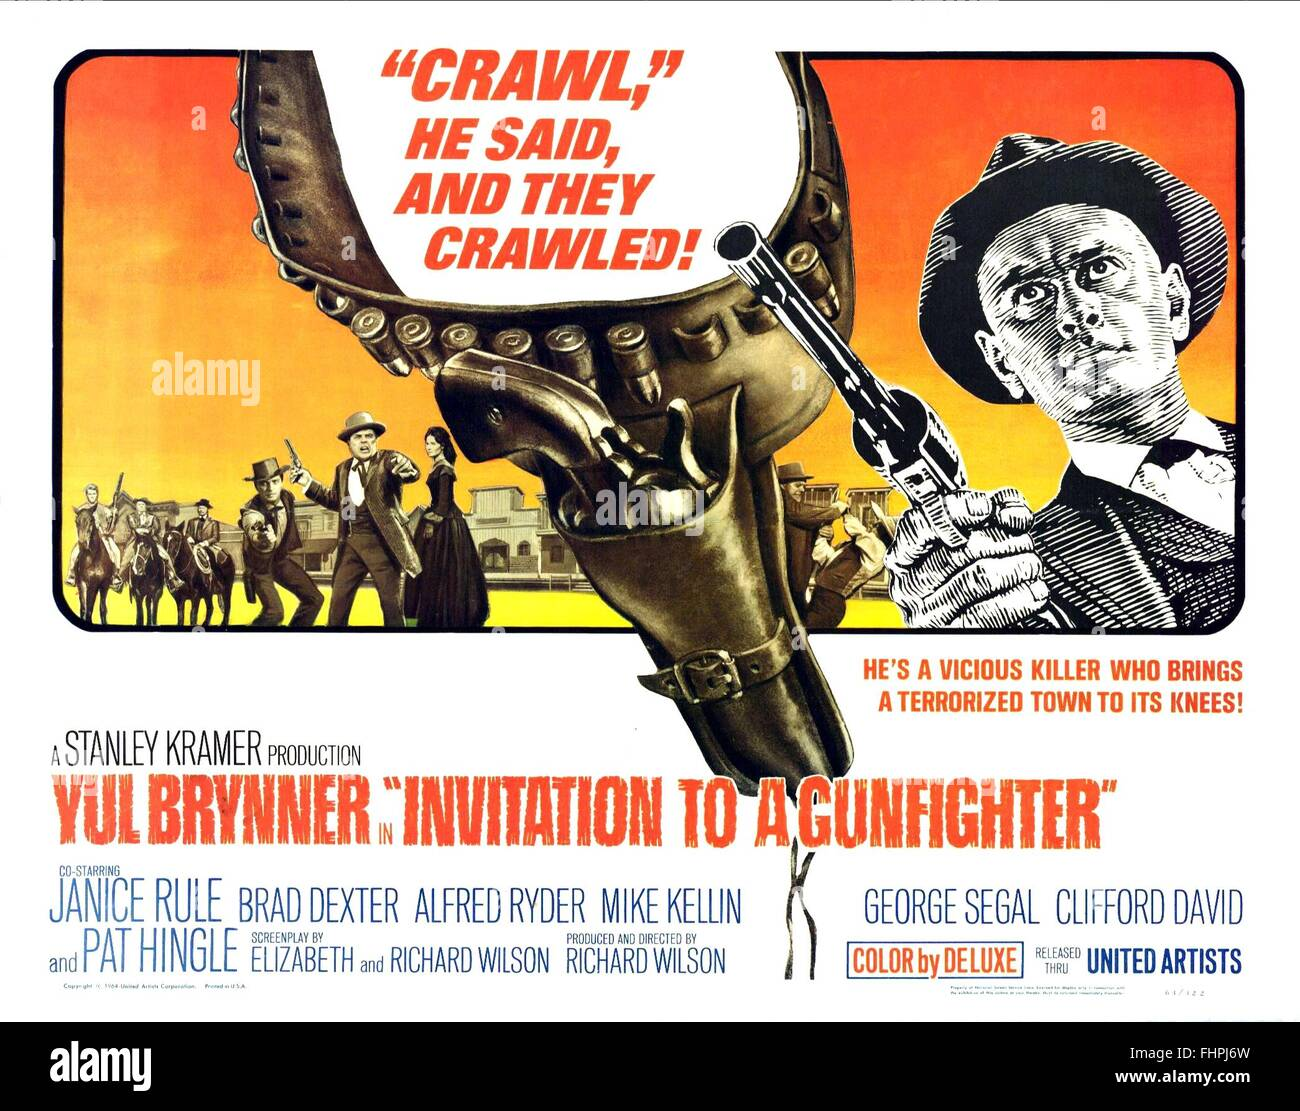 movie poster invitation to a gunfighter 1964 FHPJ6W movie poster invitation to a gunfighter (1964 stock photo, royalty,Invitation To A Gunfighter 1964